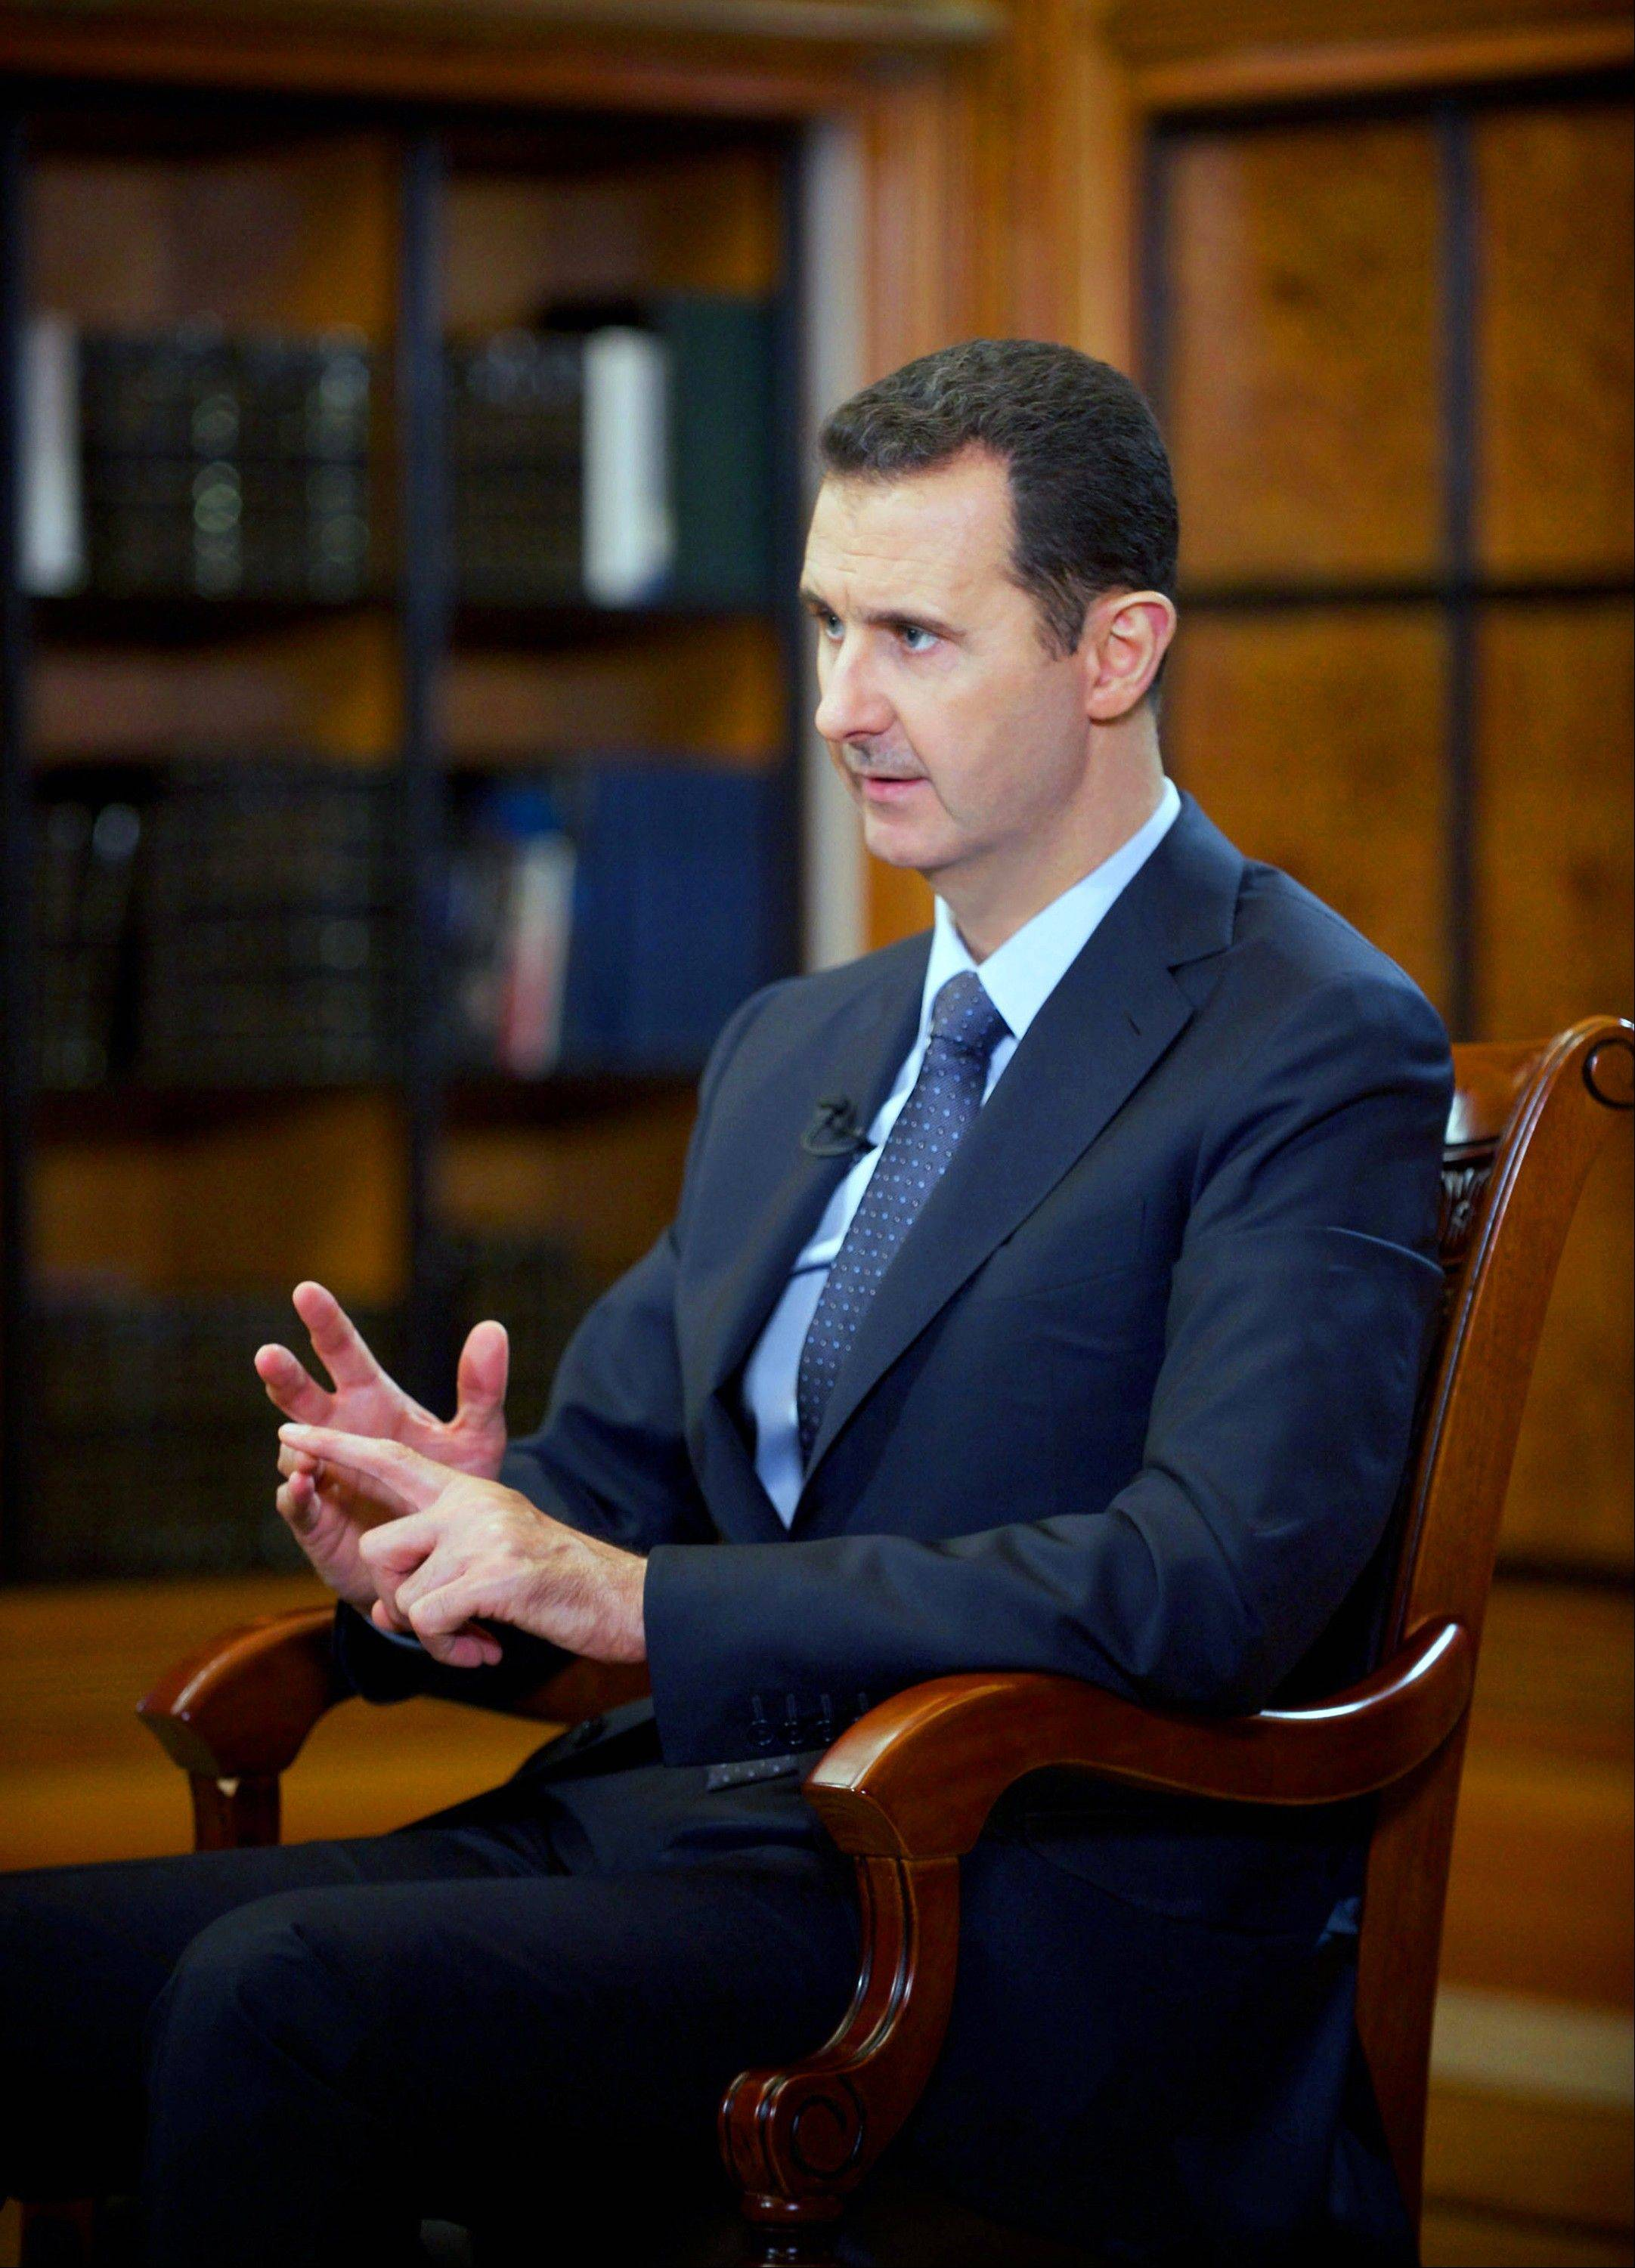 In this photo released by the Syrian official news agency SANA, Syrian President Bashar Assad speaks during an interview with Chinese state CCTV, in Damascus, Syria, Monday, Sept. 23, 2013. Assad said his government will allow international experts access to its chemical weapons sites but cautioned in an interview broadcast Monday that rebels might block them from reaching some of the locations.